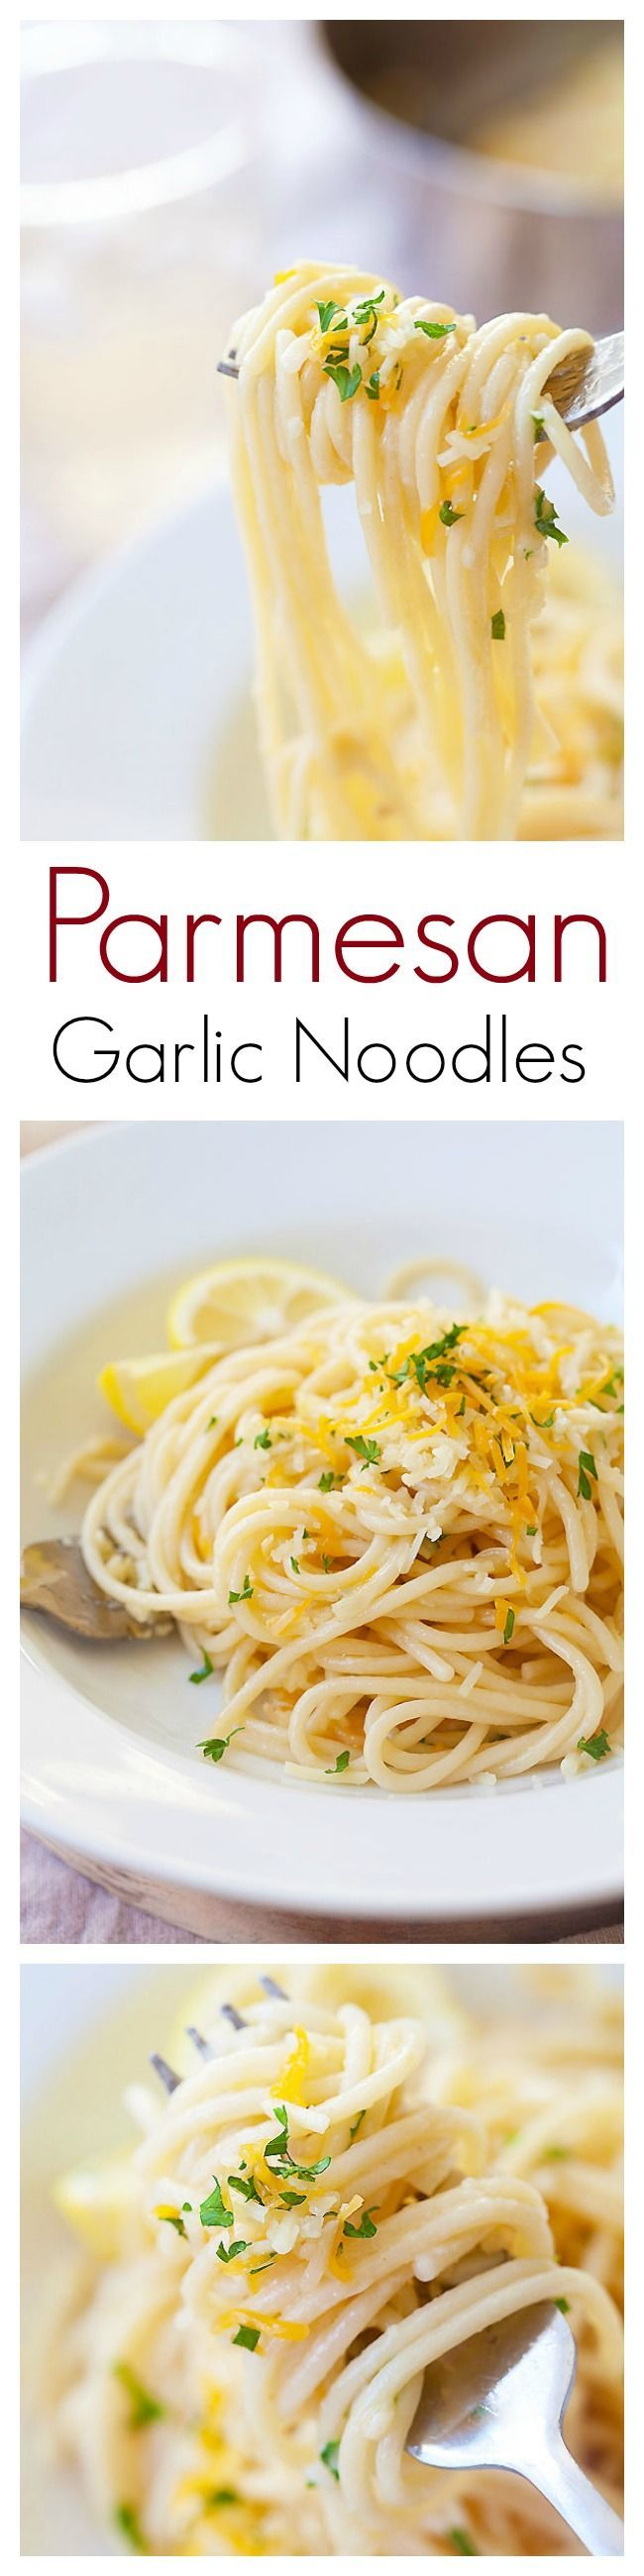 Quick and easy Parmesan Garlic Noodles with garlic and Parmesan cheese. This Parmesan Garlic Noodles recipe takes 20 mins and great for the entire family | rasamalaysia.com | #pasta #noodles